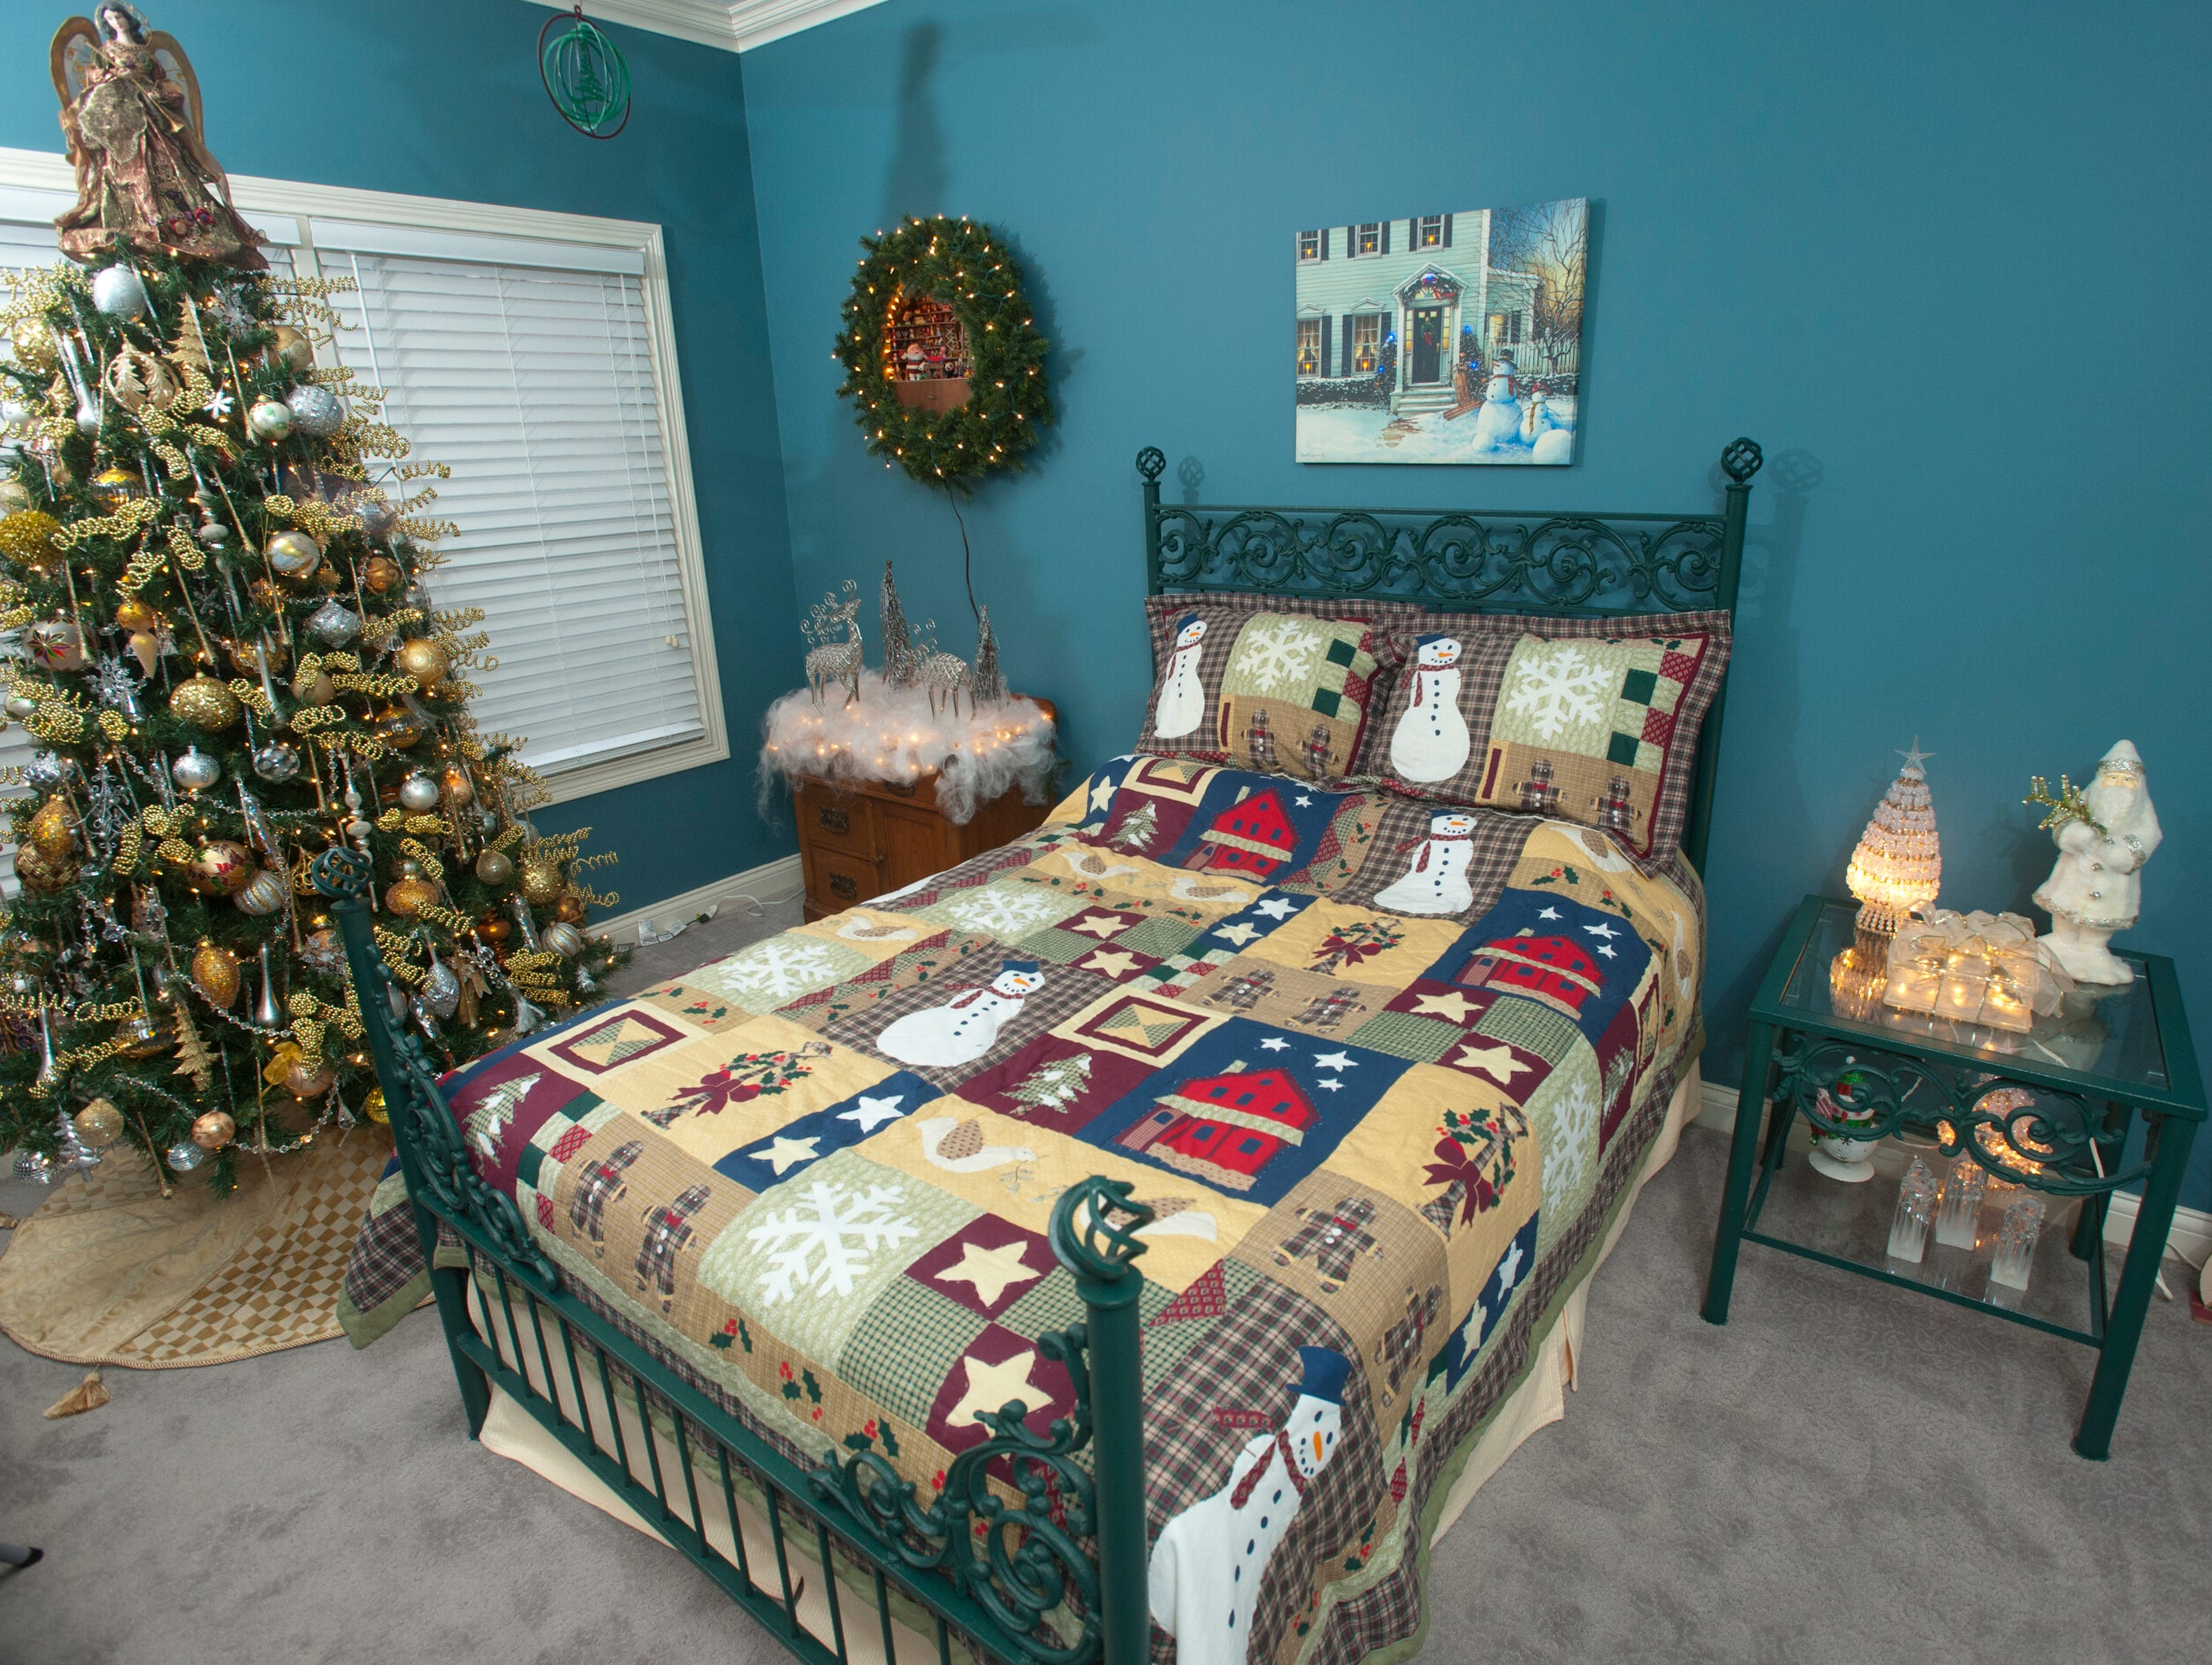 The McMurry family guest room, decorated for Christmas.